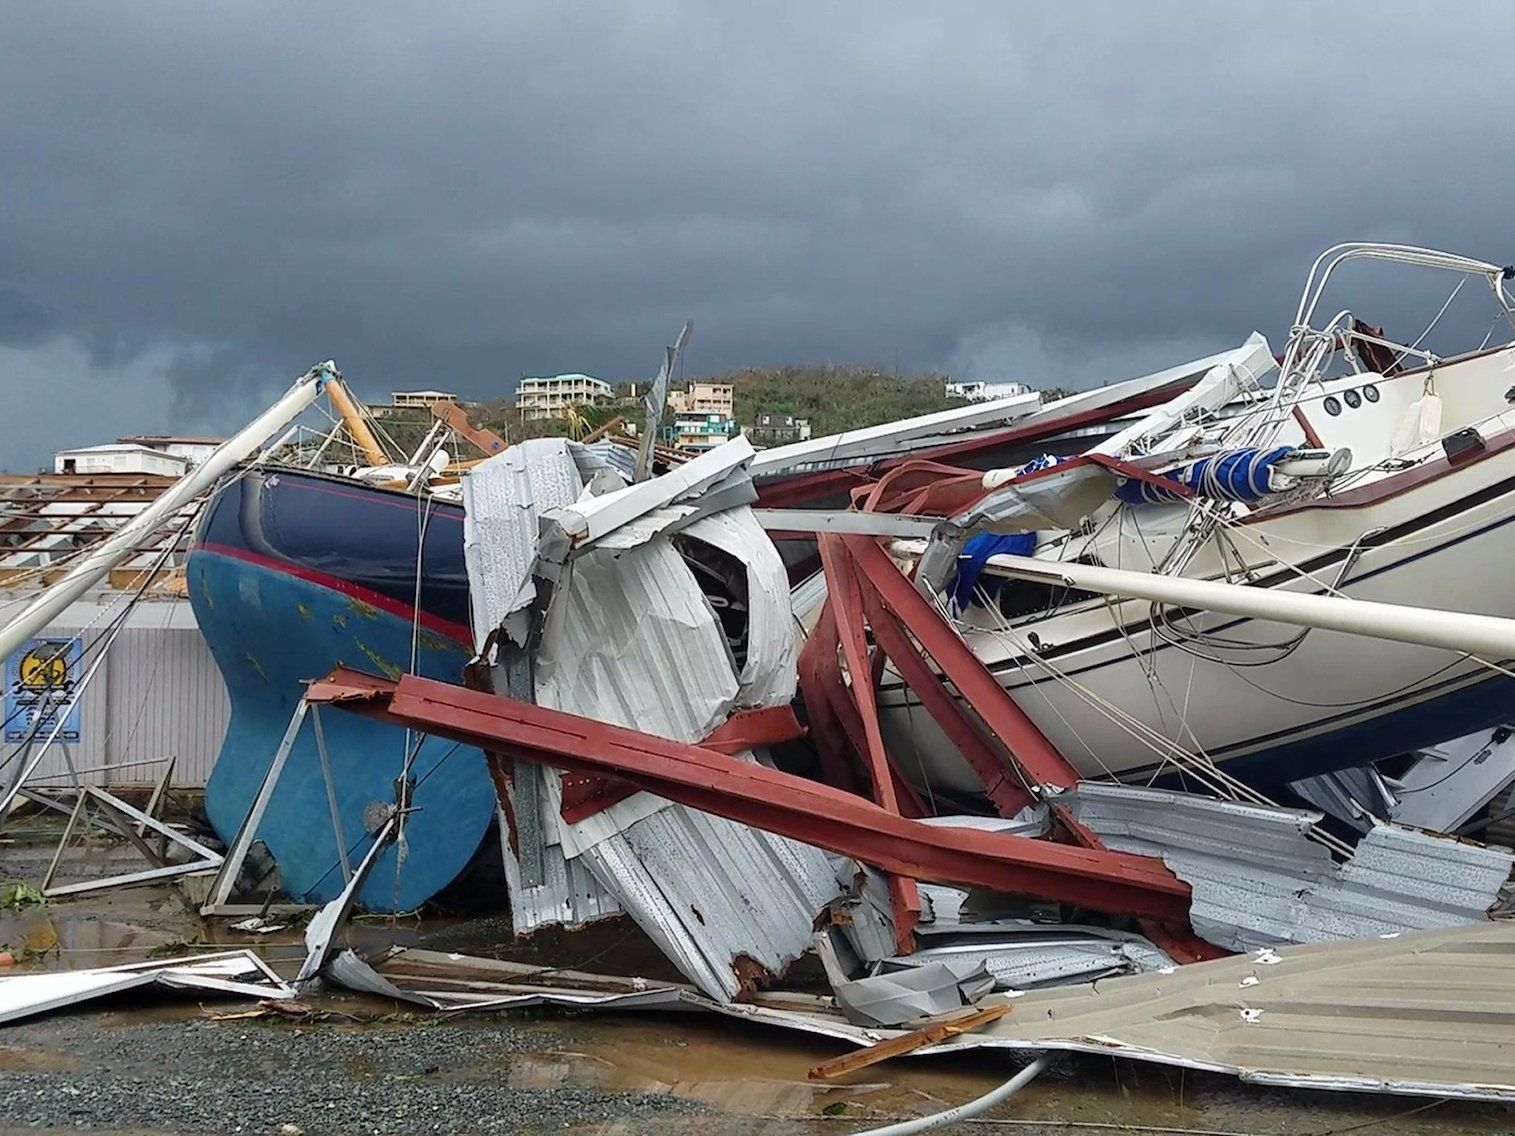 Hurricane Irma Damage In Us Virgin Islands Leaves Residents Fearful Path Of Destruction National Hurricane Center Caribbean